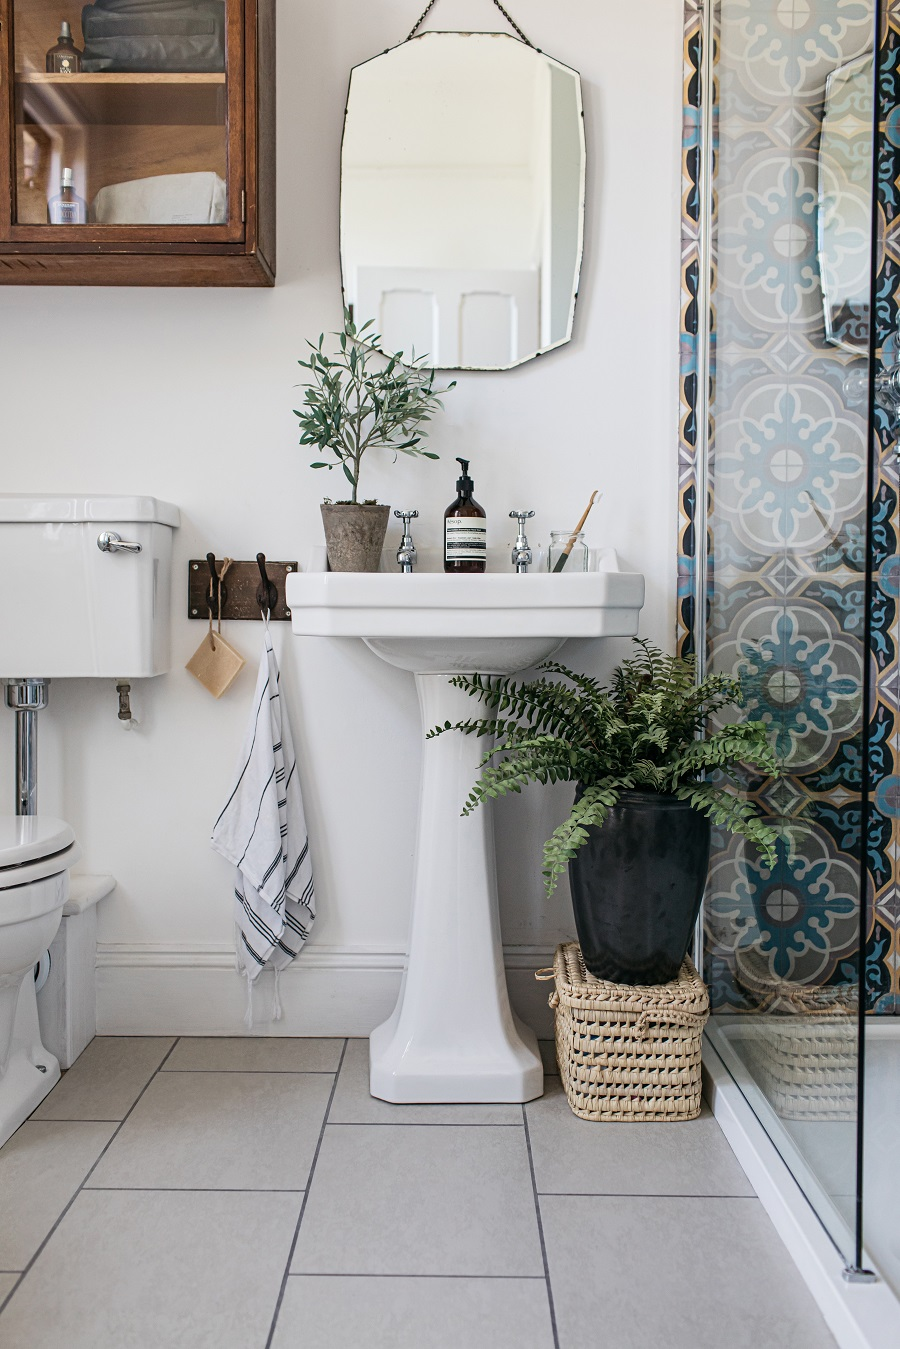 A Pretty Vintage Inspired Bathroom and How To Get The Look